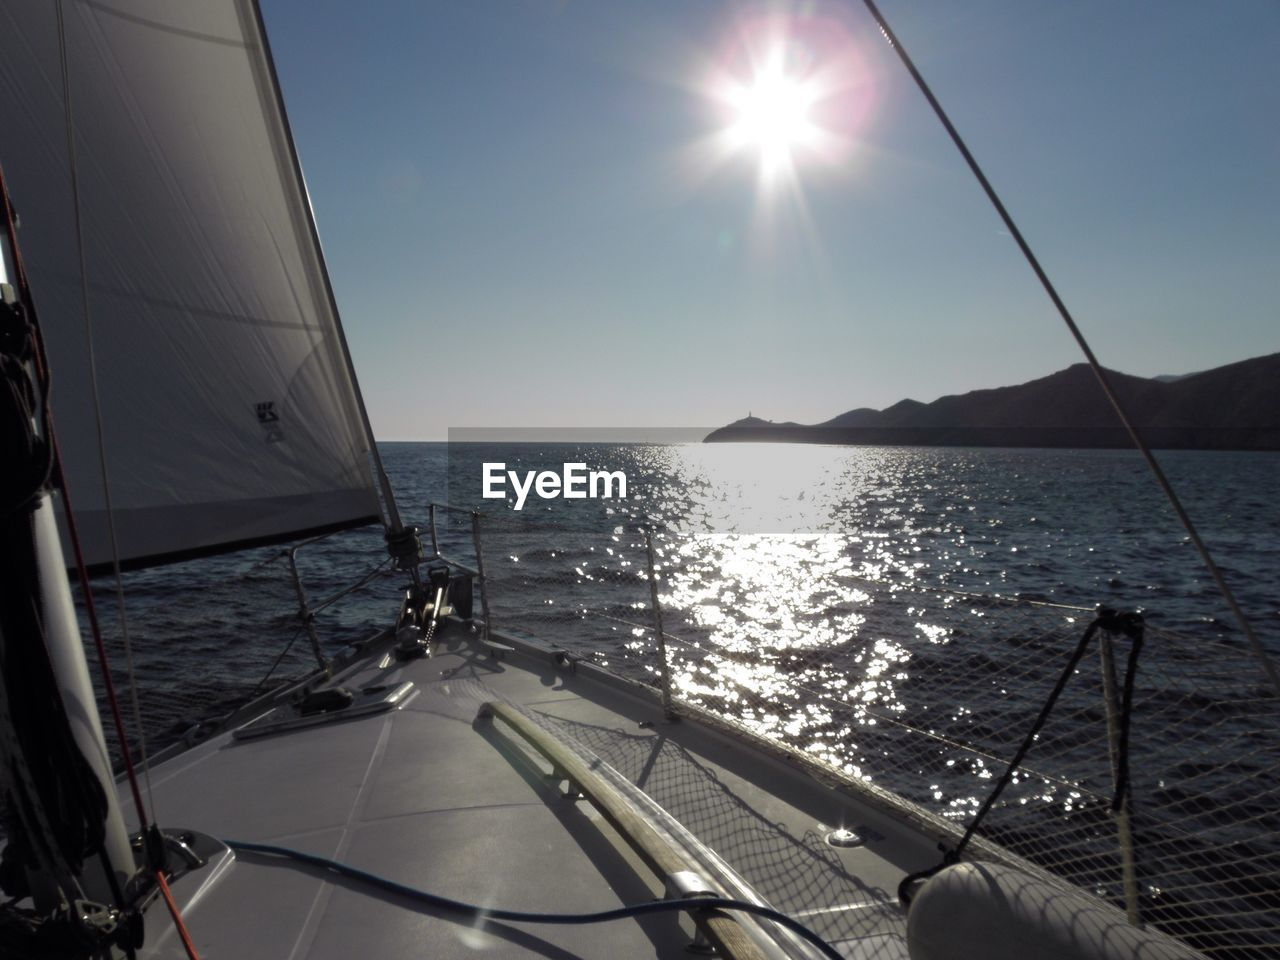 sea, sunlight, sun, water, nautical vessel, sailing, beauty in nature, mode of transport, sailboat, nature, transportation, scenics, no people, yacht, sky, outdoors, day, horizon over water, clear sky, boat deck, yachting